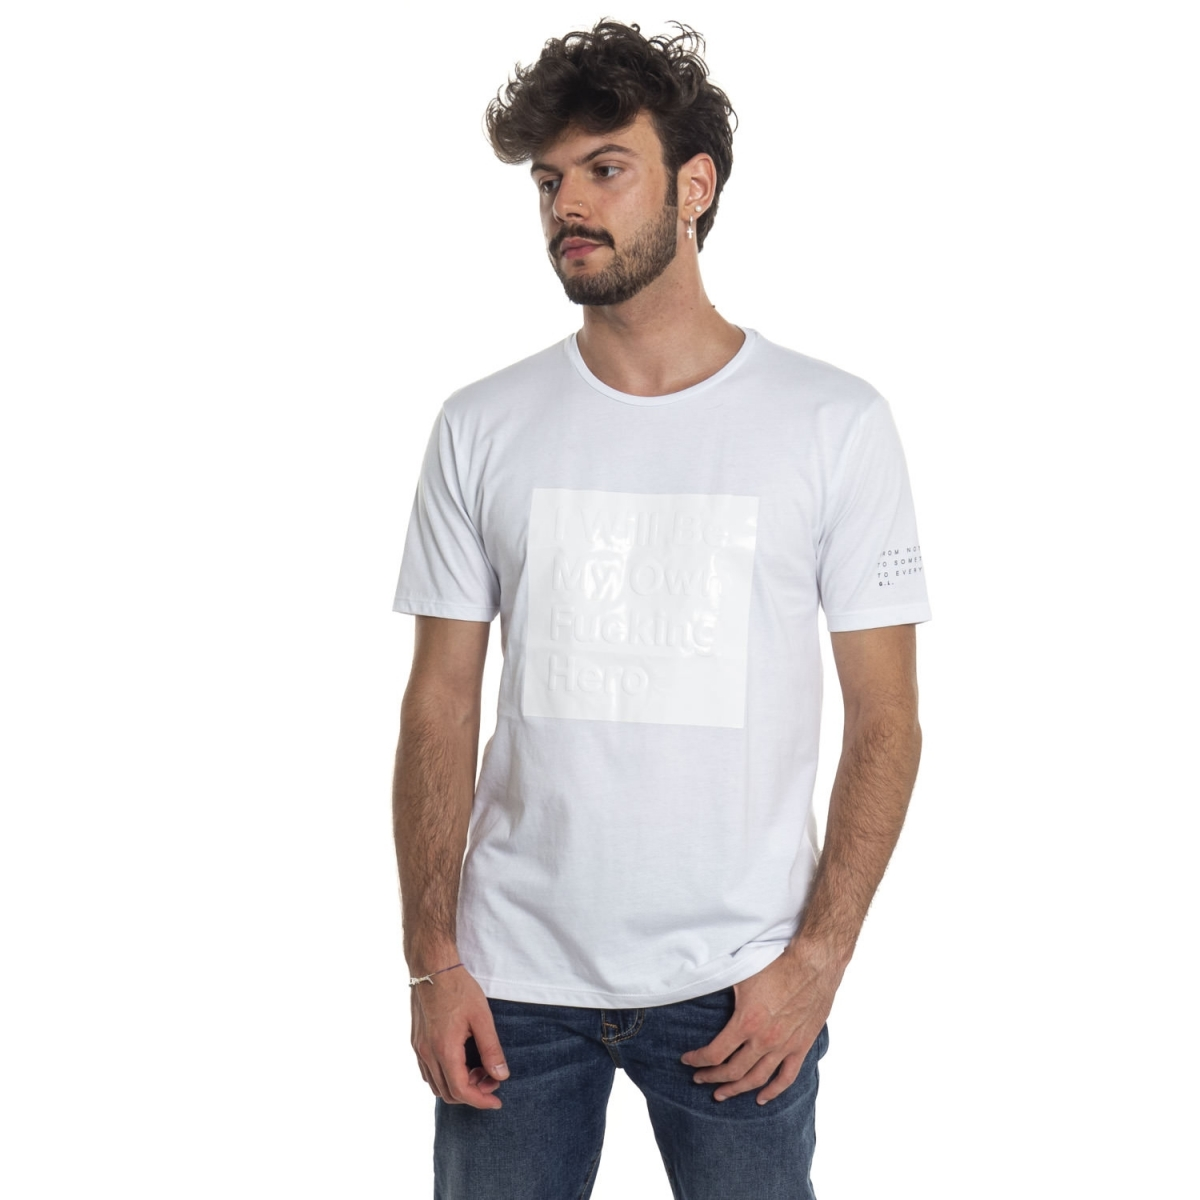 clothing T-shirt men T-Shirt GLPL1518 GIANNI LUPO Cafedelmar Shop